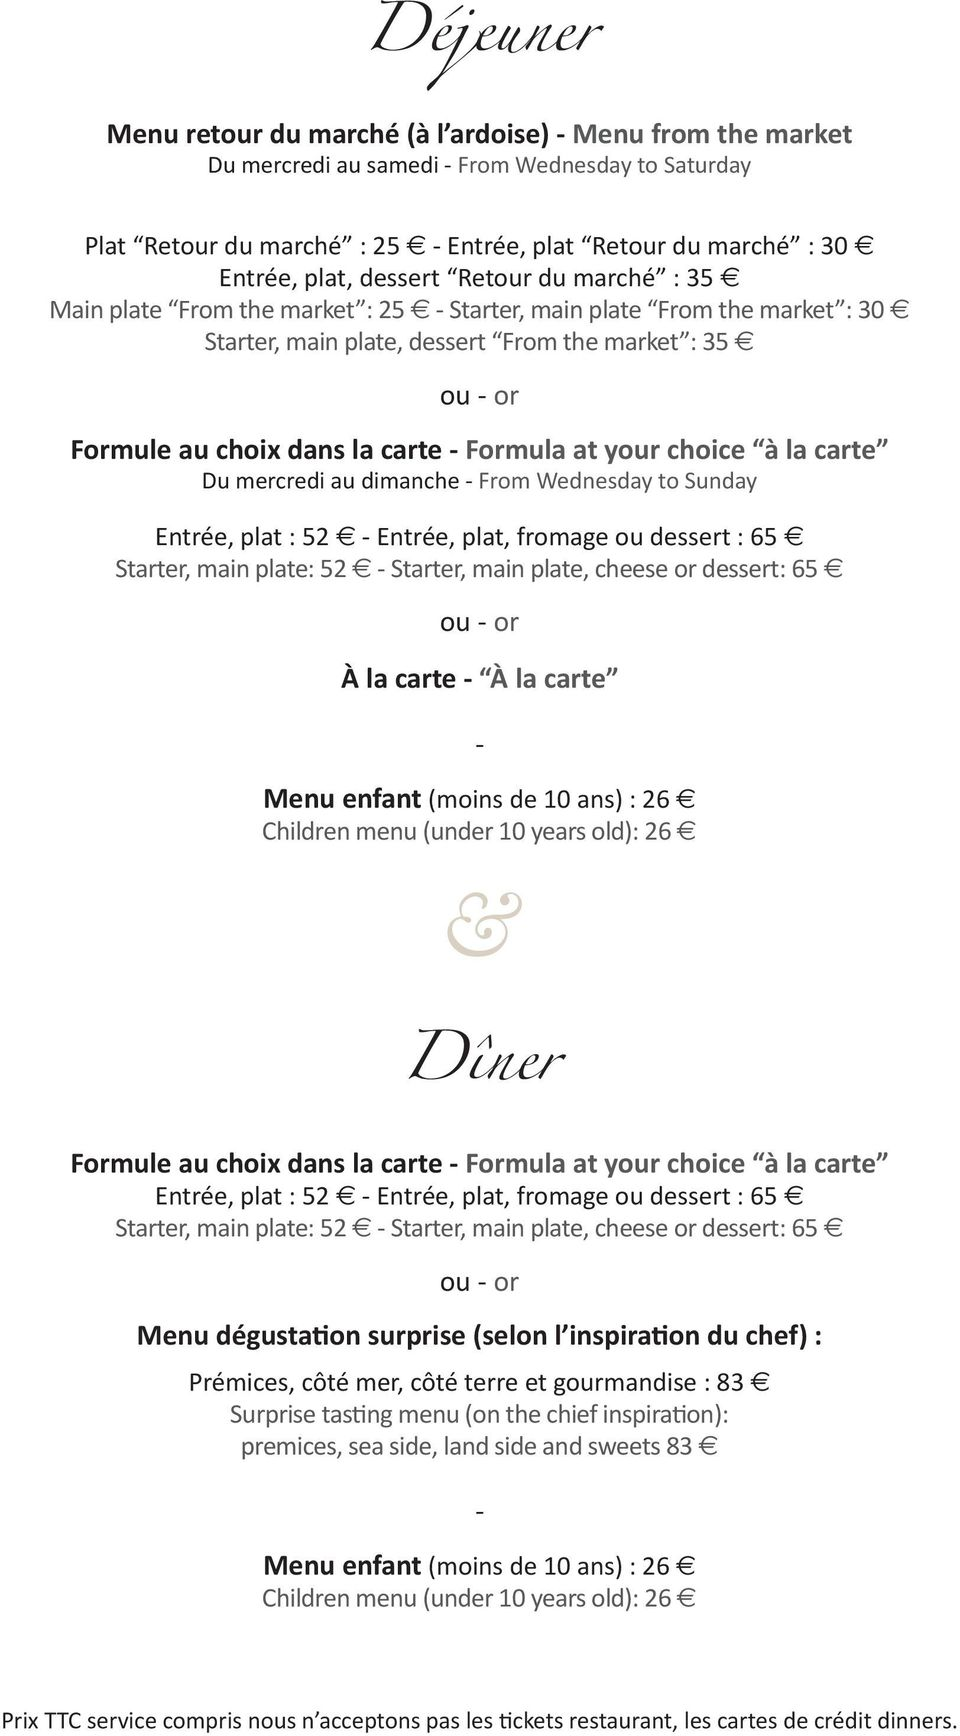 la carte - Formula at your choice à la carte Du mercredi au dimanche - From Wednesday to Sunday Entrée, plat : 52 e - Entrée, plat, fromage ou dessert : 65 e Starter, main plate: 52 e - Starter, main